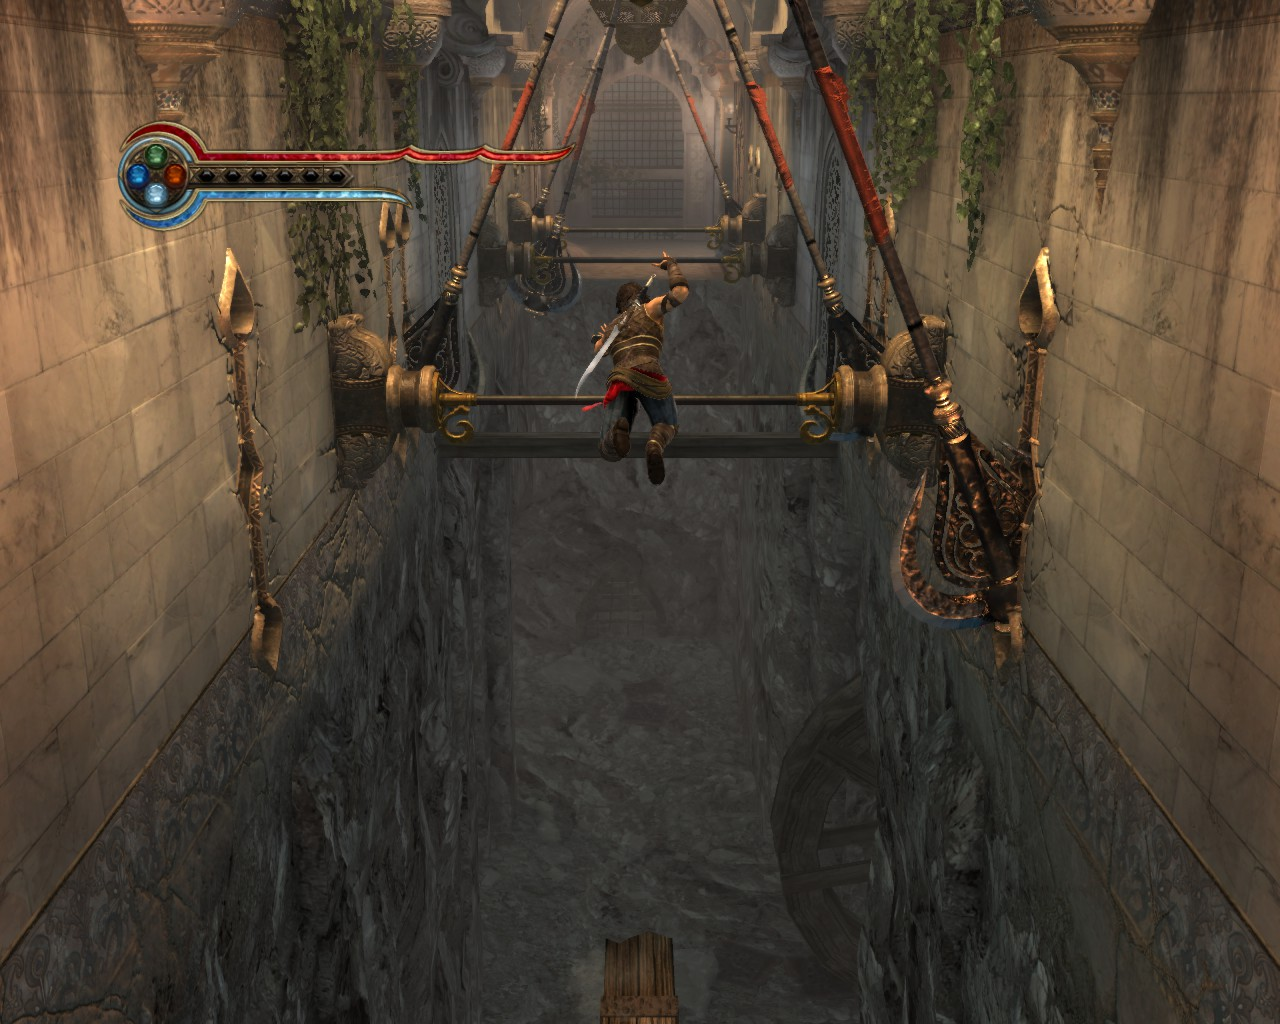 Prince of Persia 2014-06-03 22-45-56-84.jpg - Prince of Persia: The Forgotten Sands